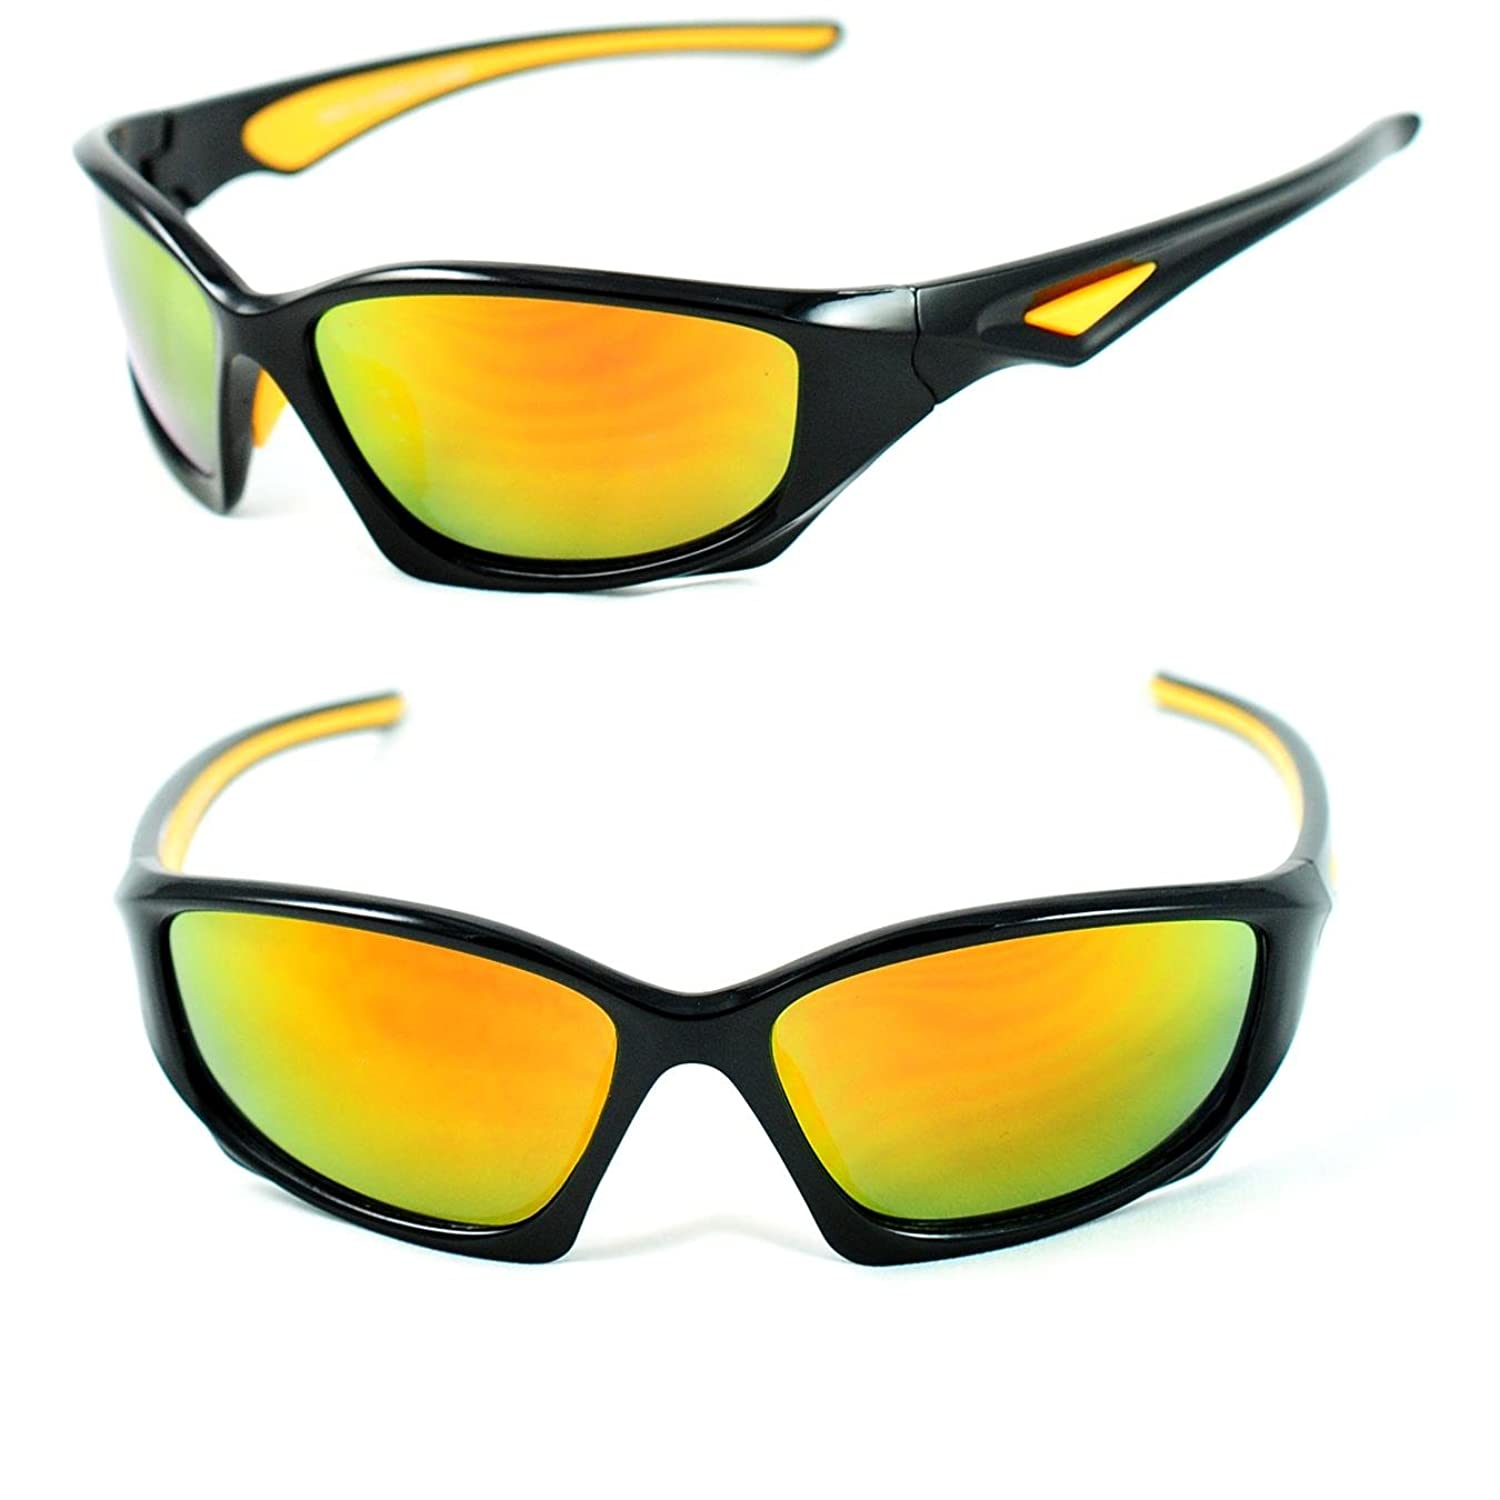 Active Sport Wrap Around Sunglasses Color Mirrored Anti-Reflection Lenses